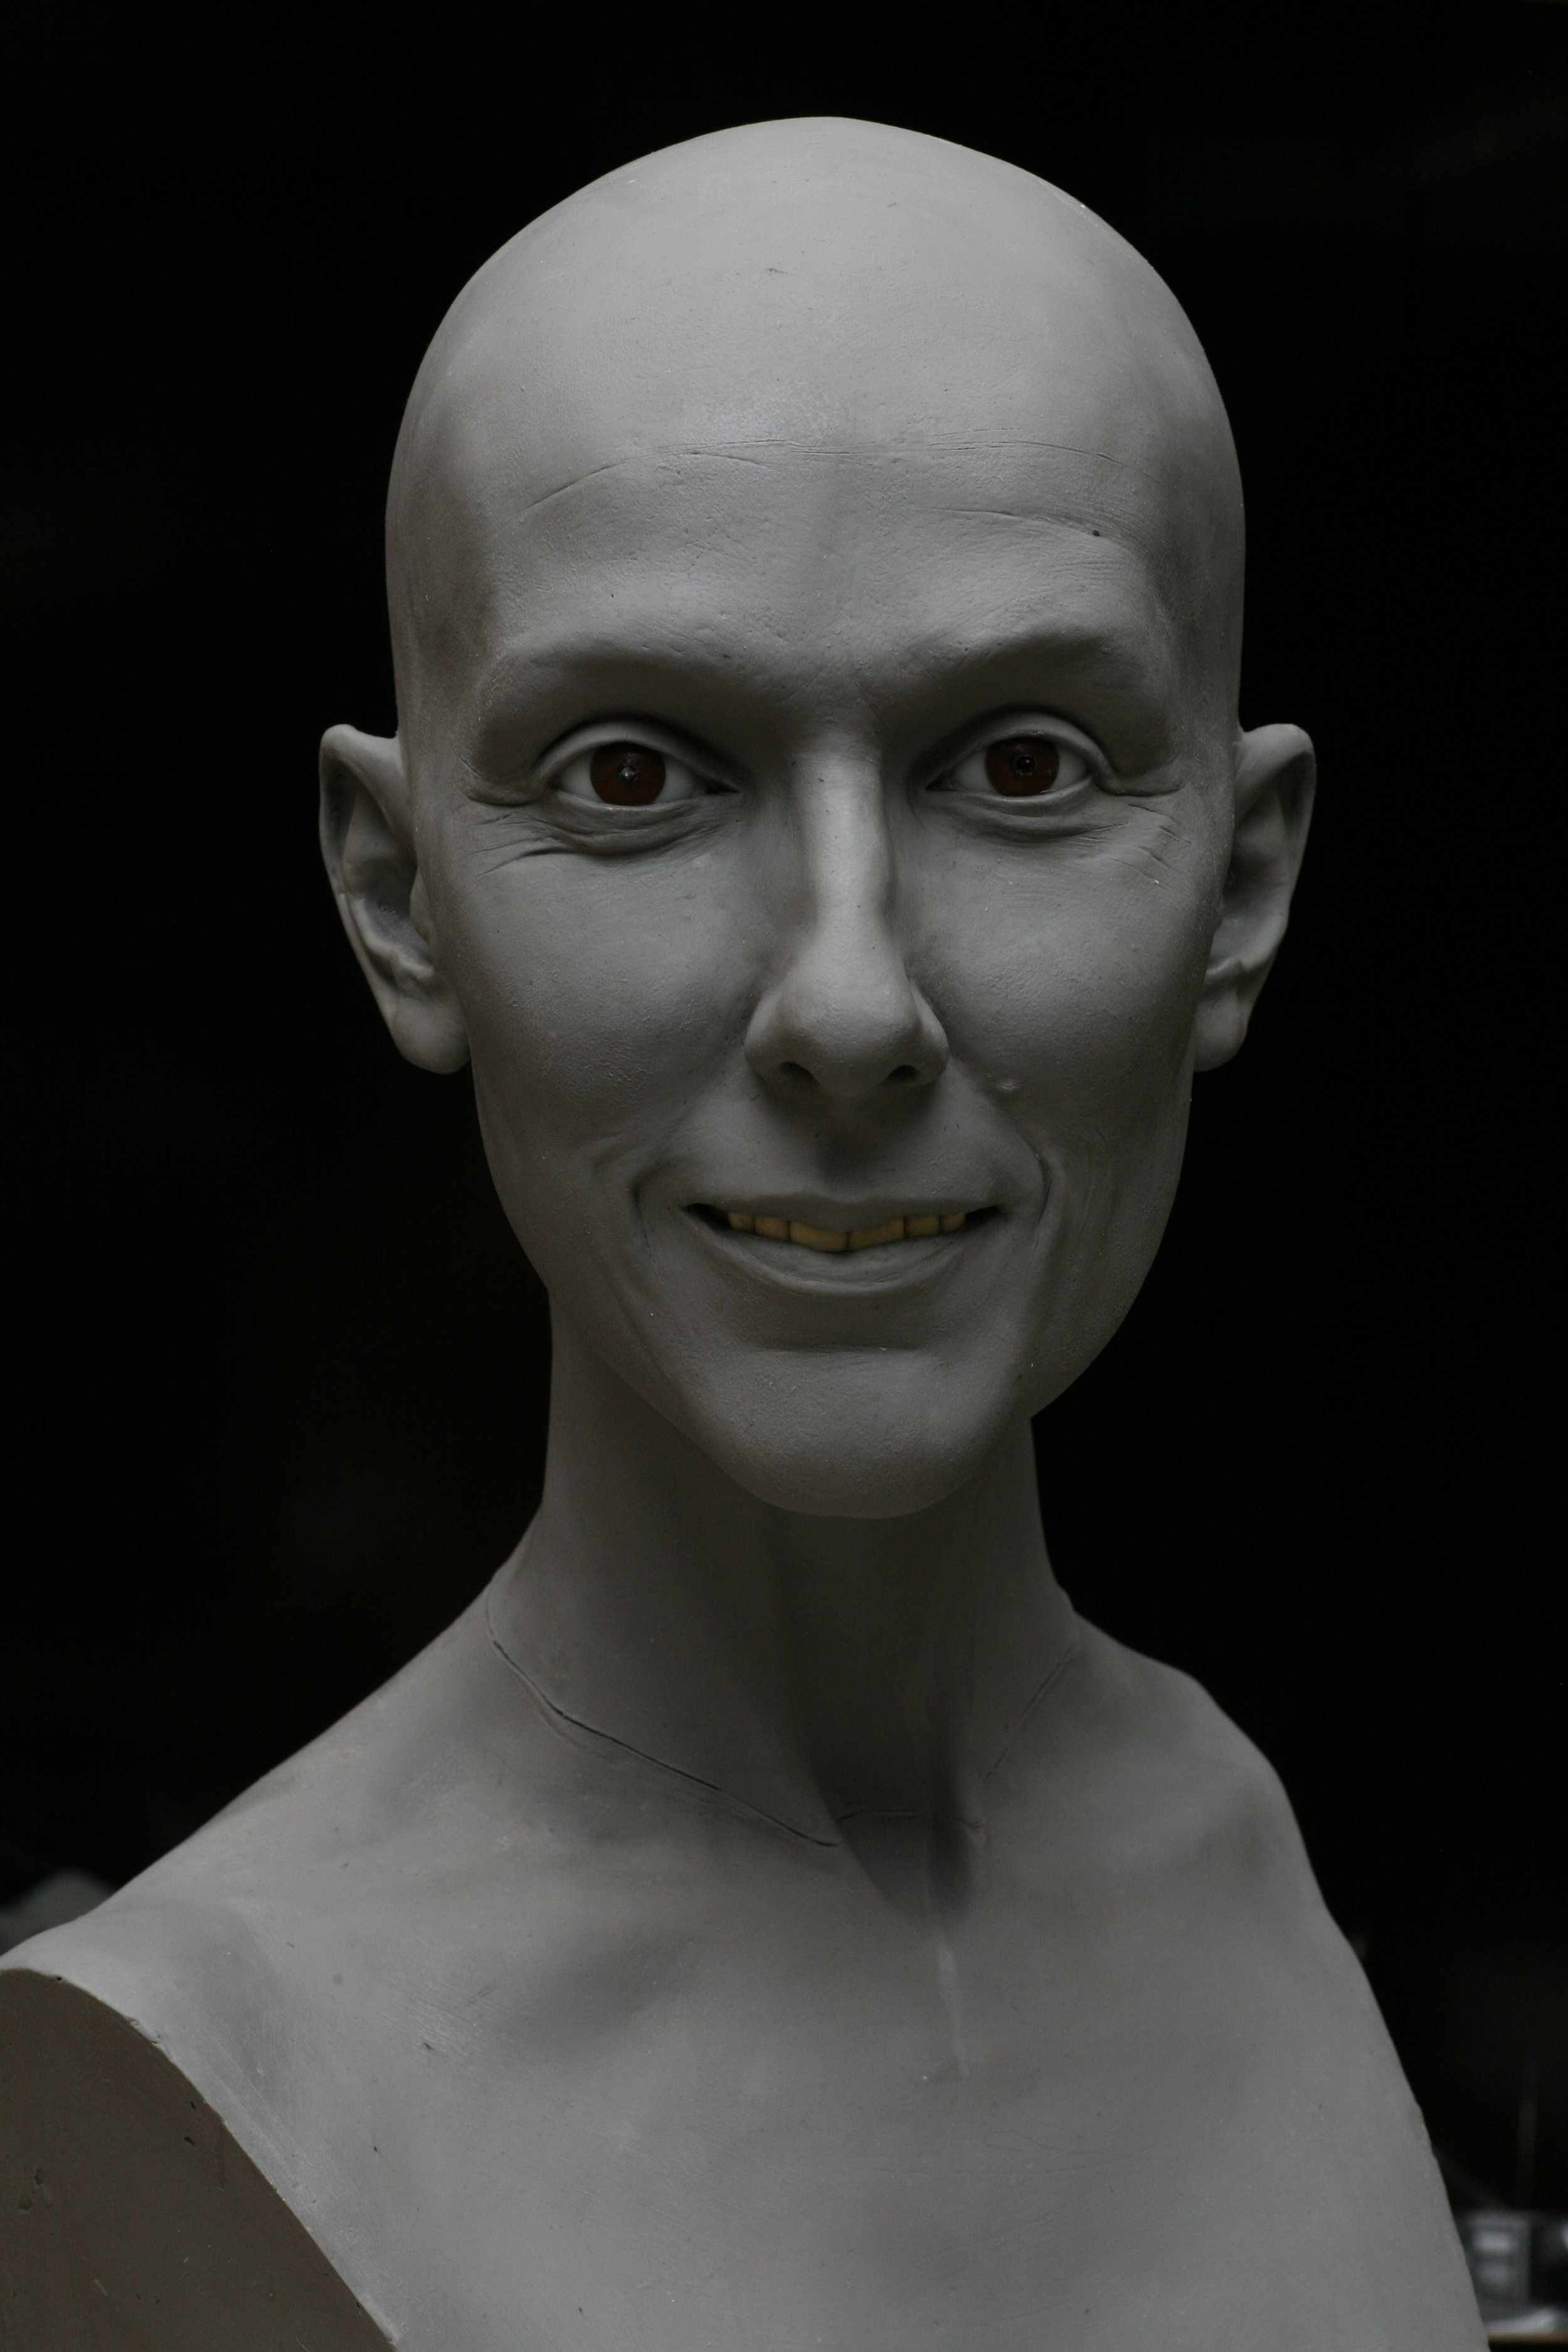 Celine Dion - Clay sculpture by Eric Saint Chaffray - Credit Musée Grévin